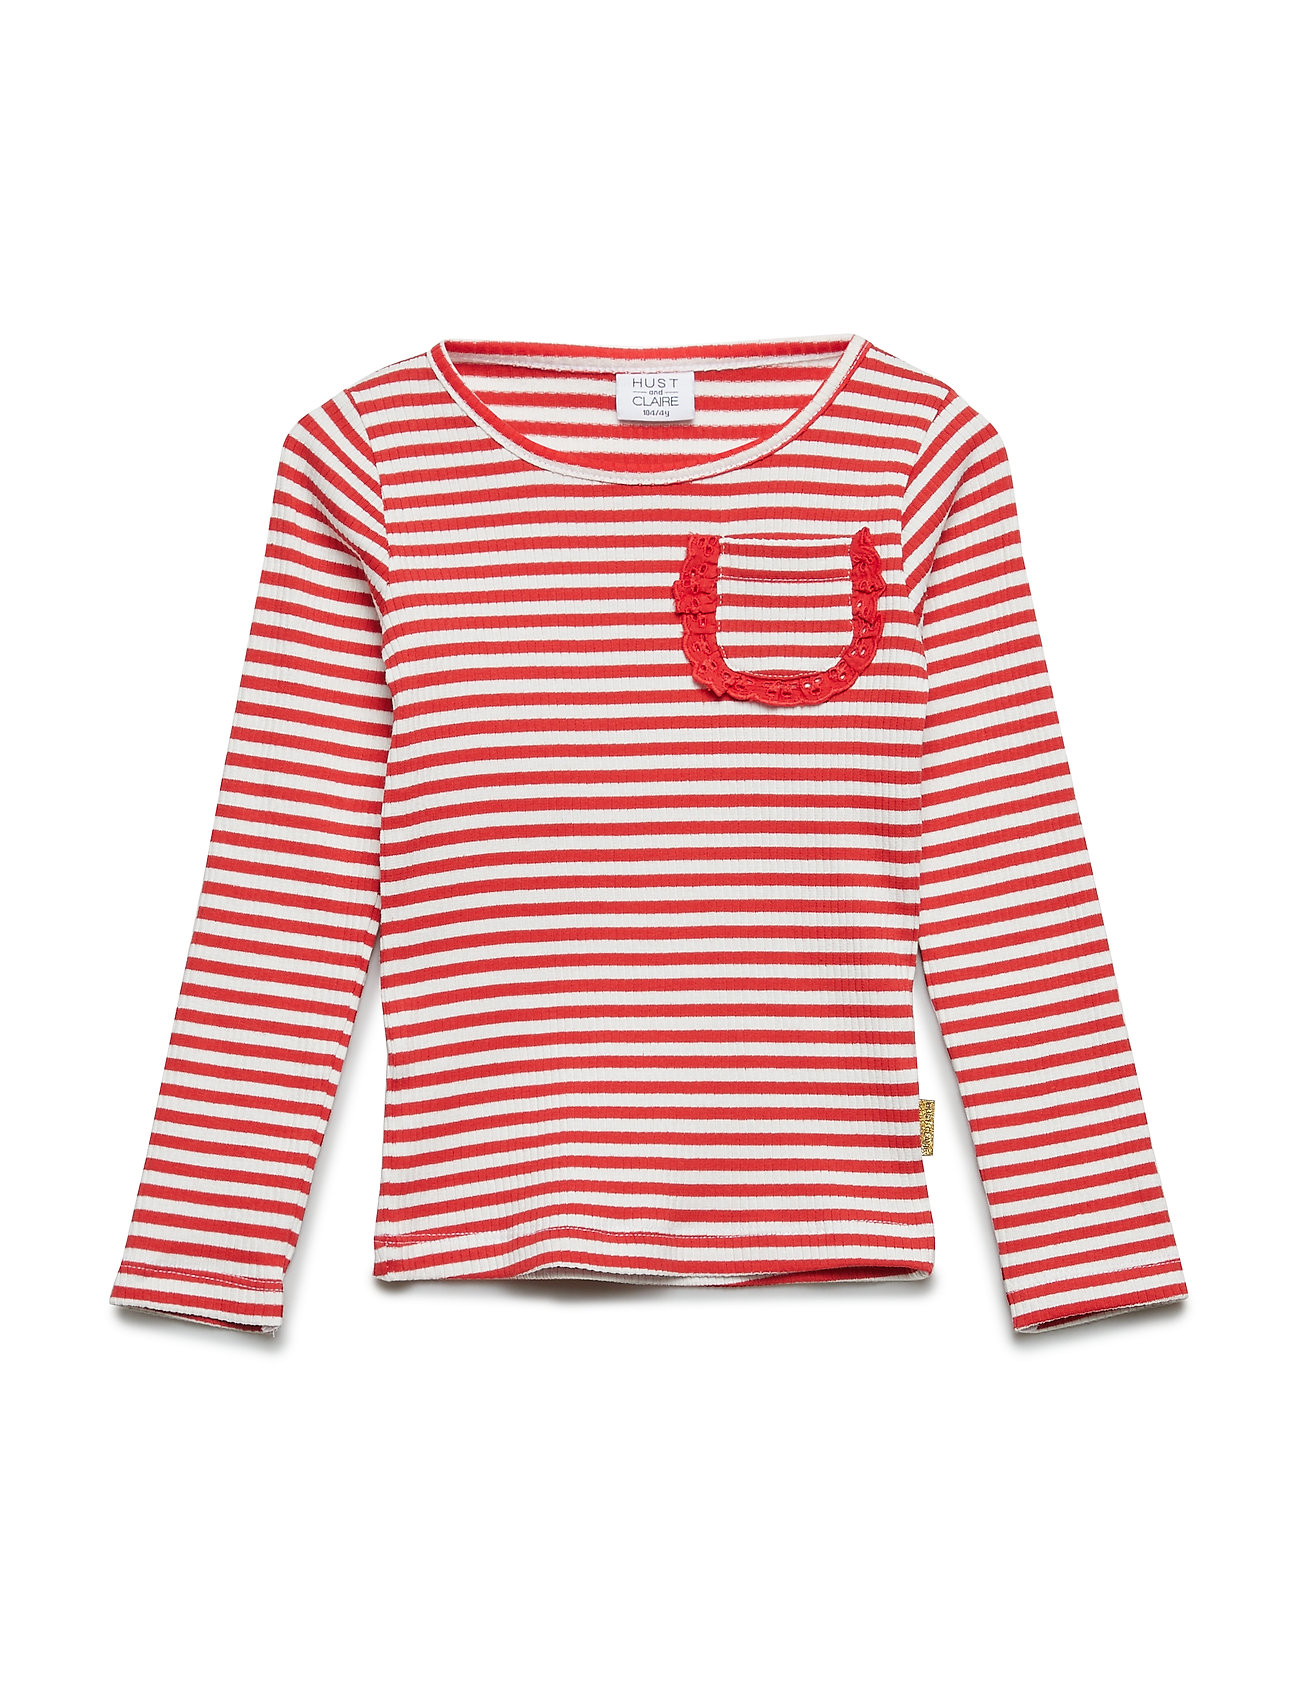 Hust & Claire Alma - T-shirt l/s - POPPY RED